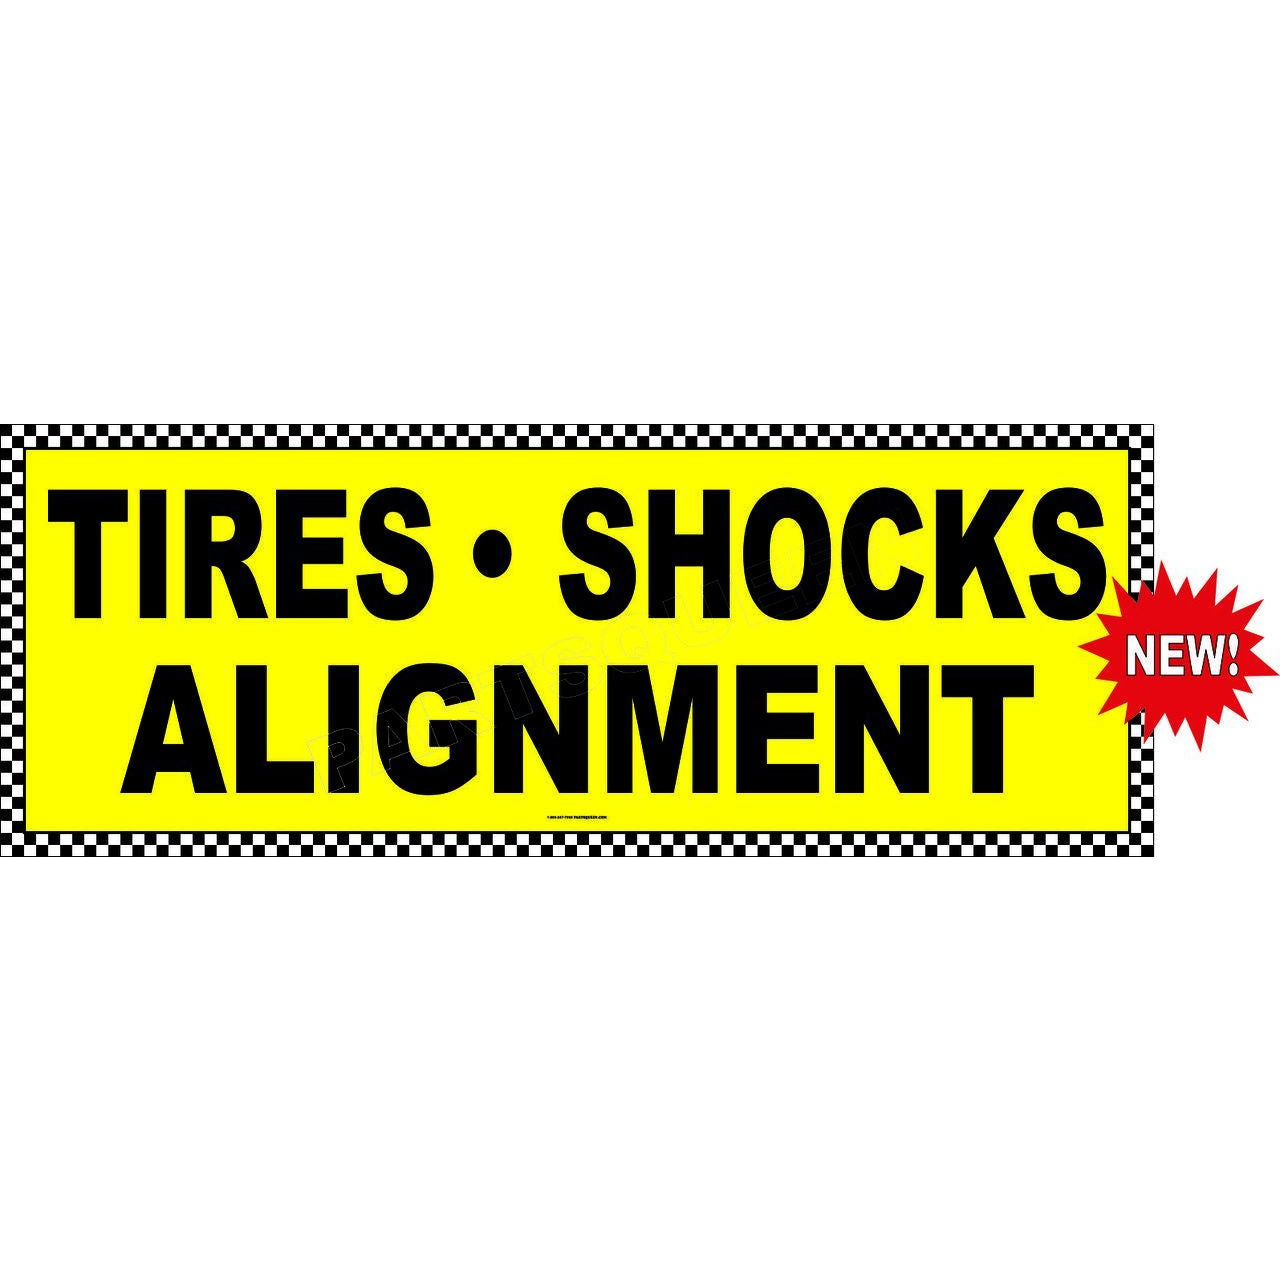 TIRES SHOCKS ALIGNMENT AB189CHK